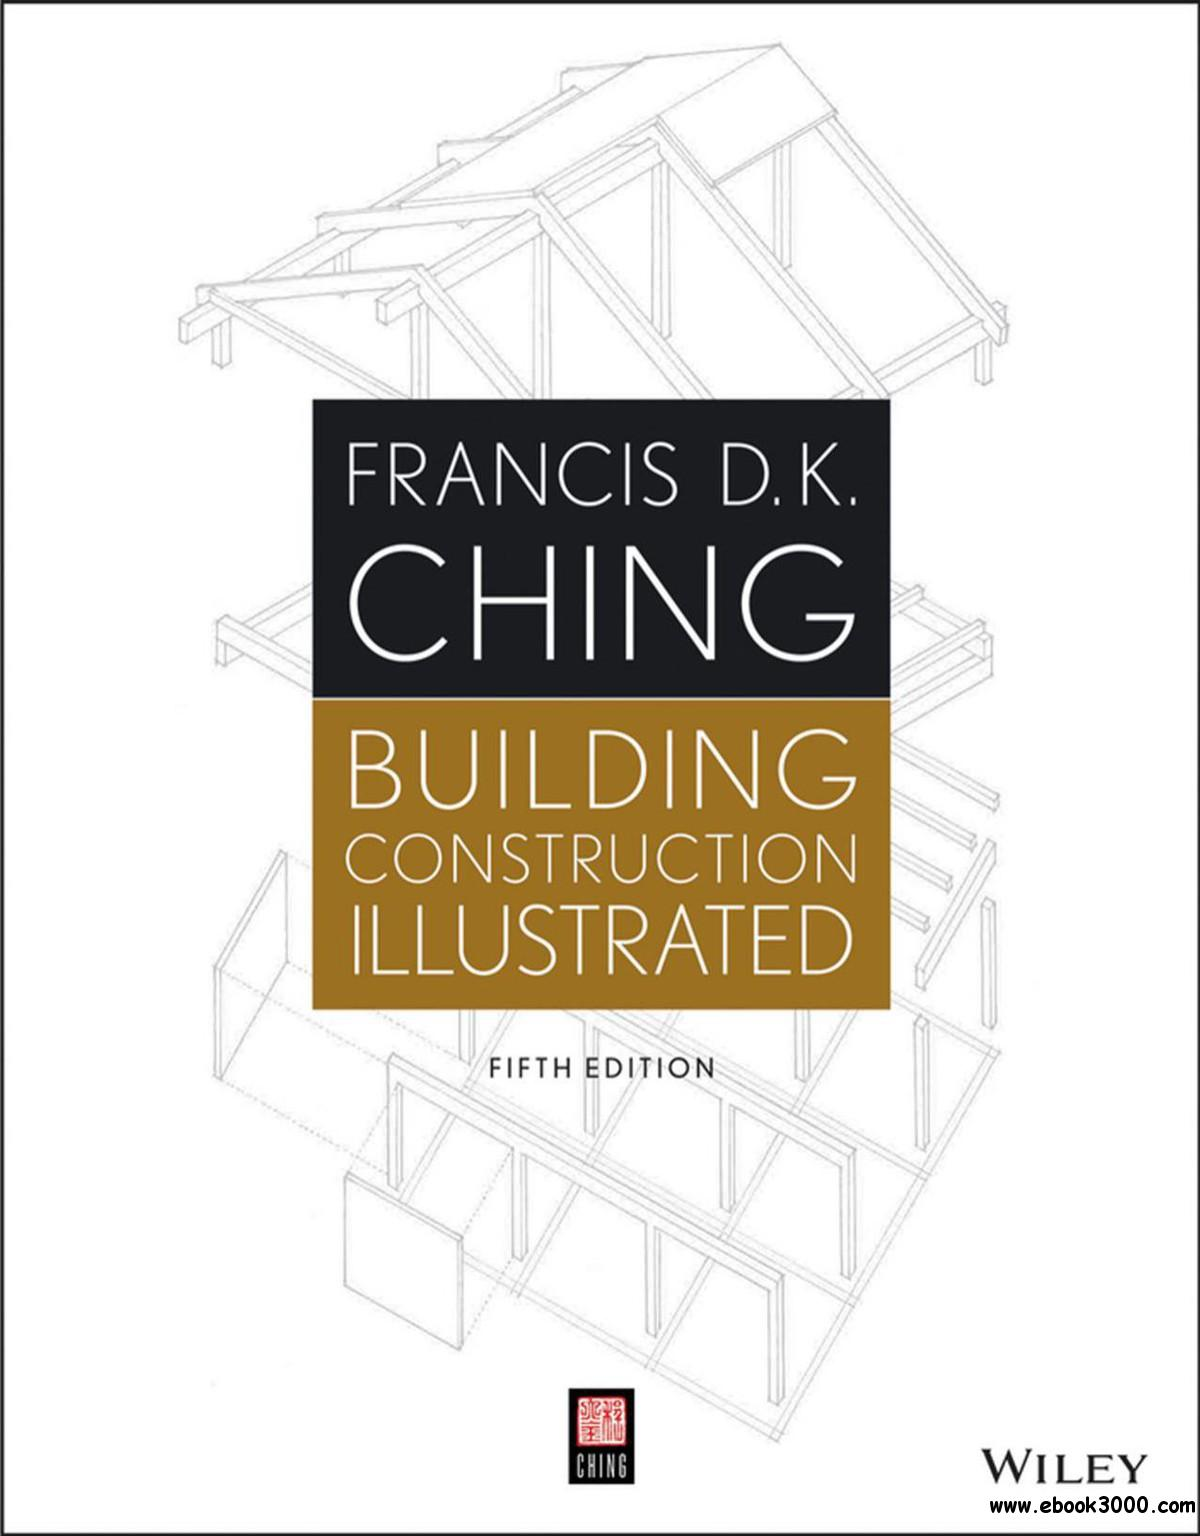 Building Construction Illustrated free download